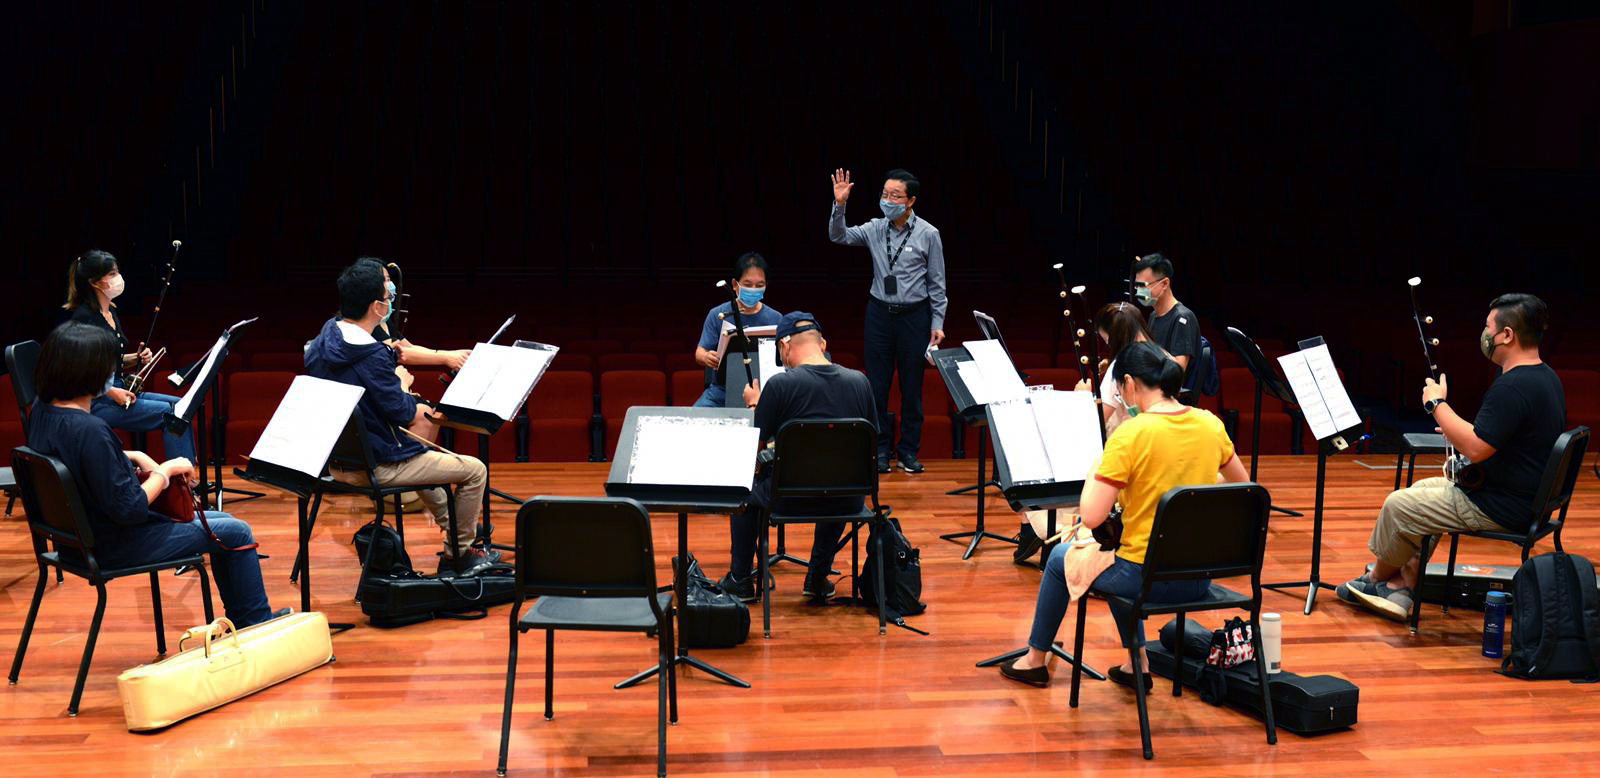 sco-photo-editorial-23 COVID-19 Phase 2: Lights on! Singapore Chinese Orchestra back to rehearsal after 91 days